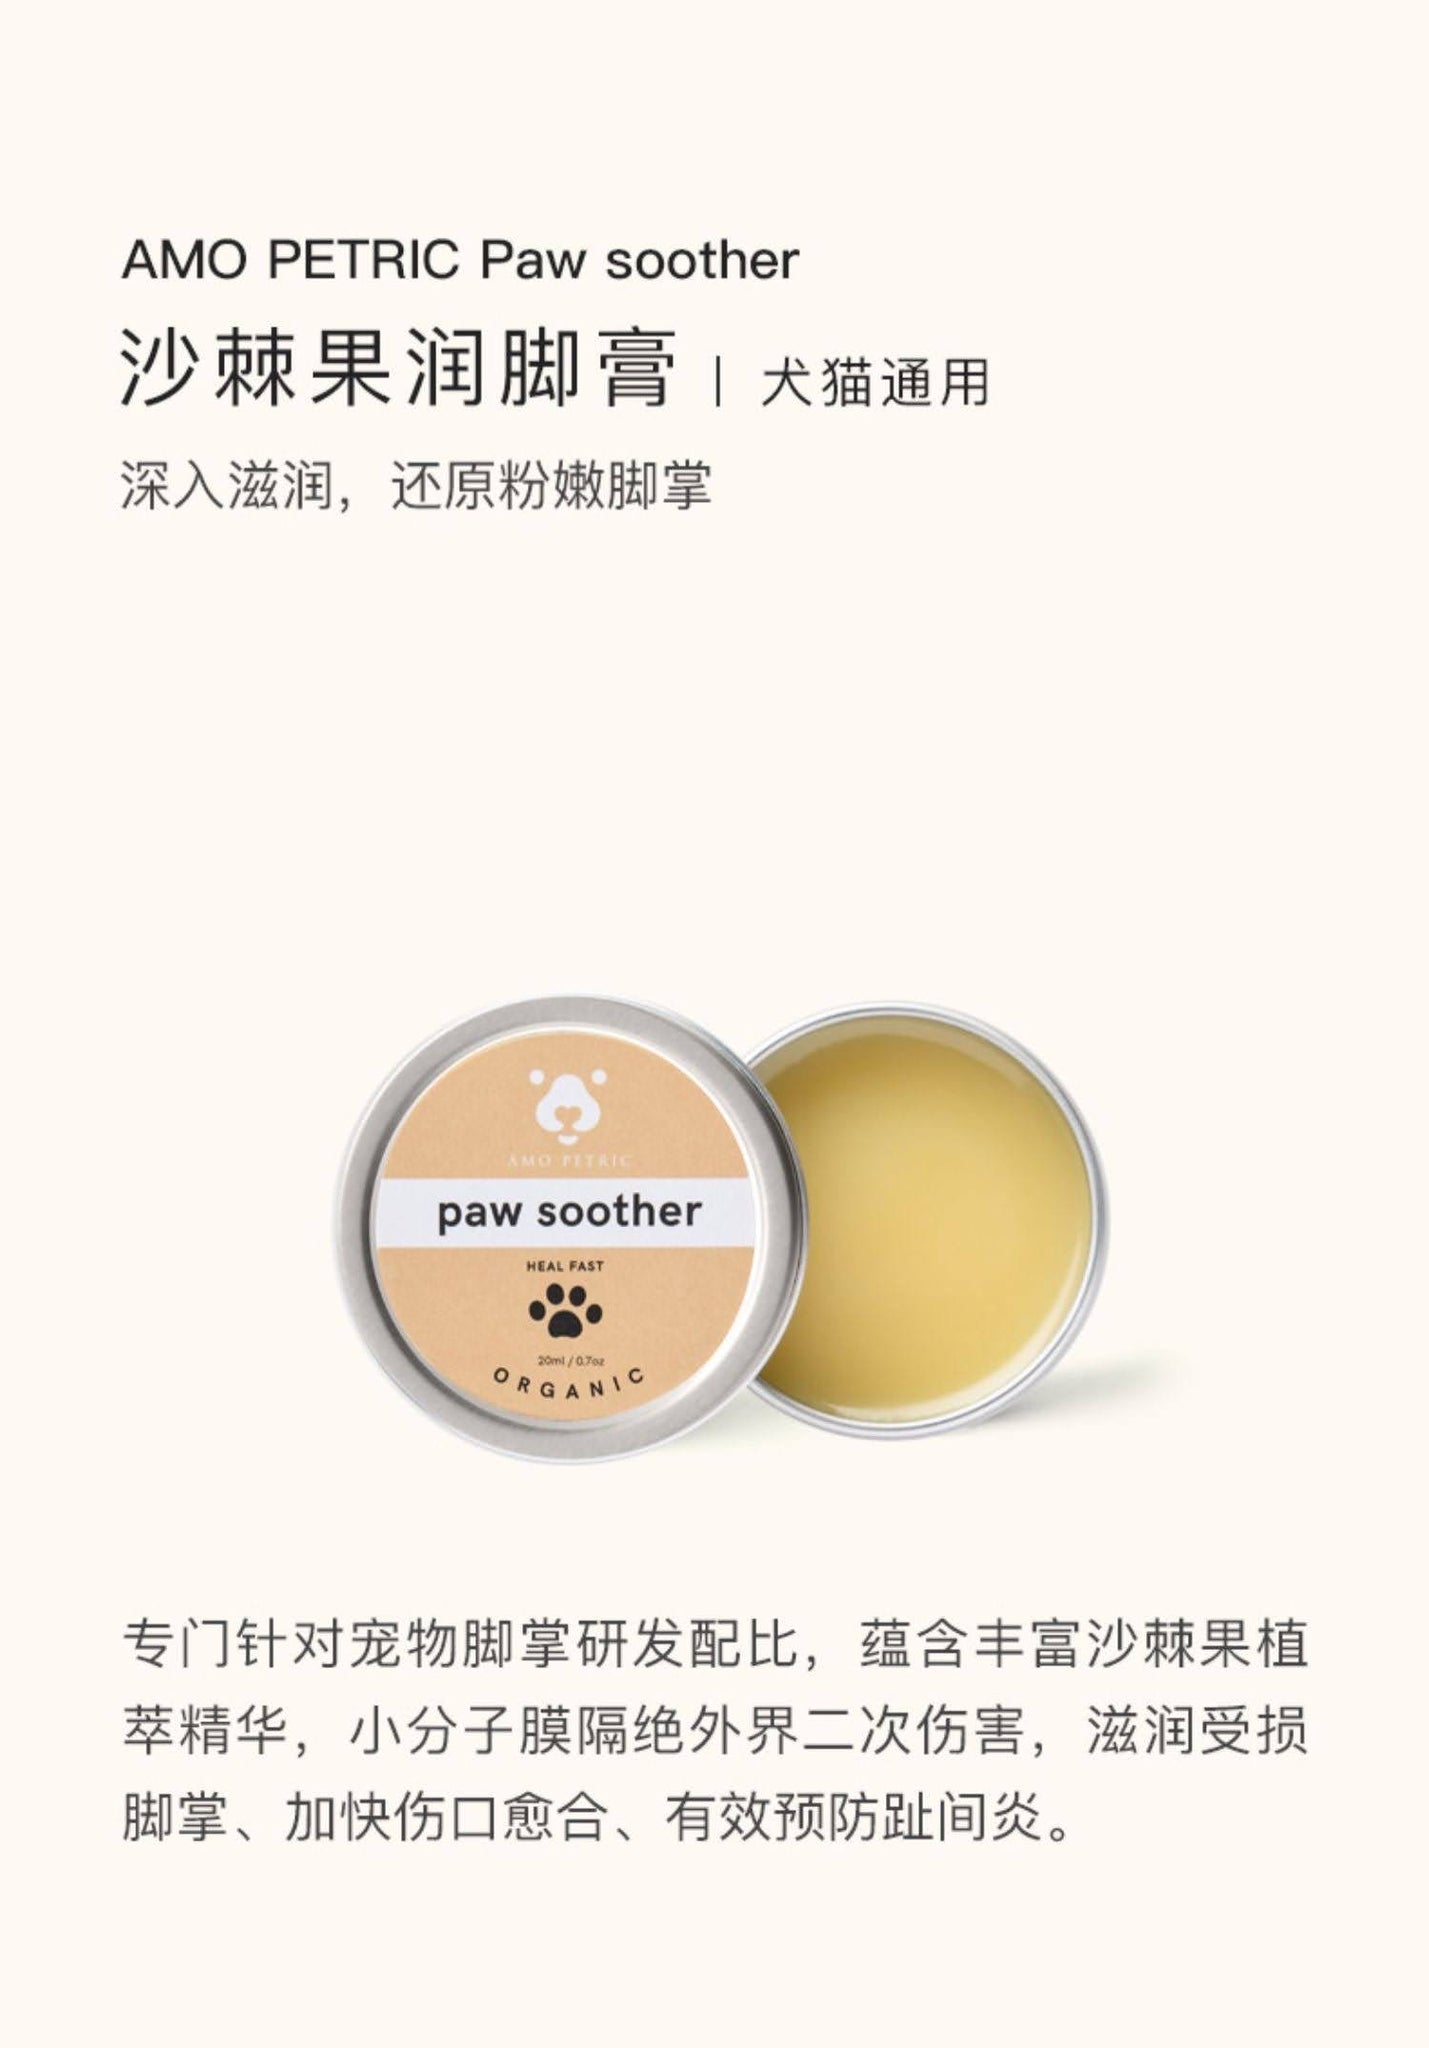 Amo Petric Paw Soother